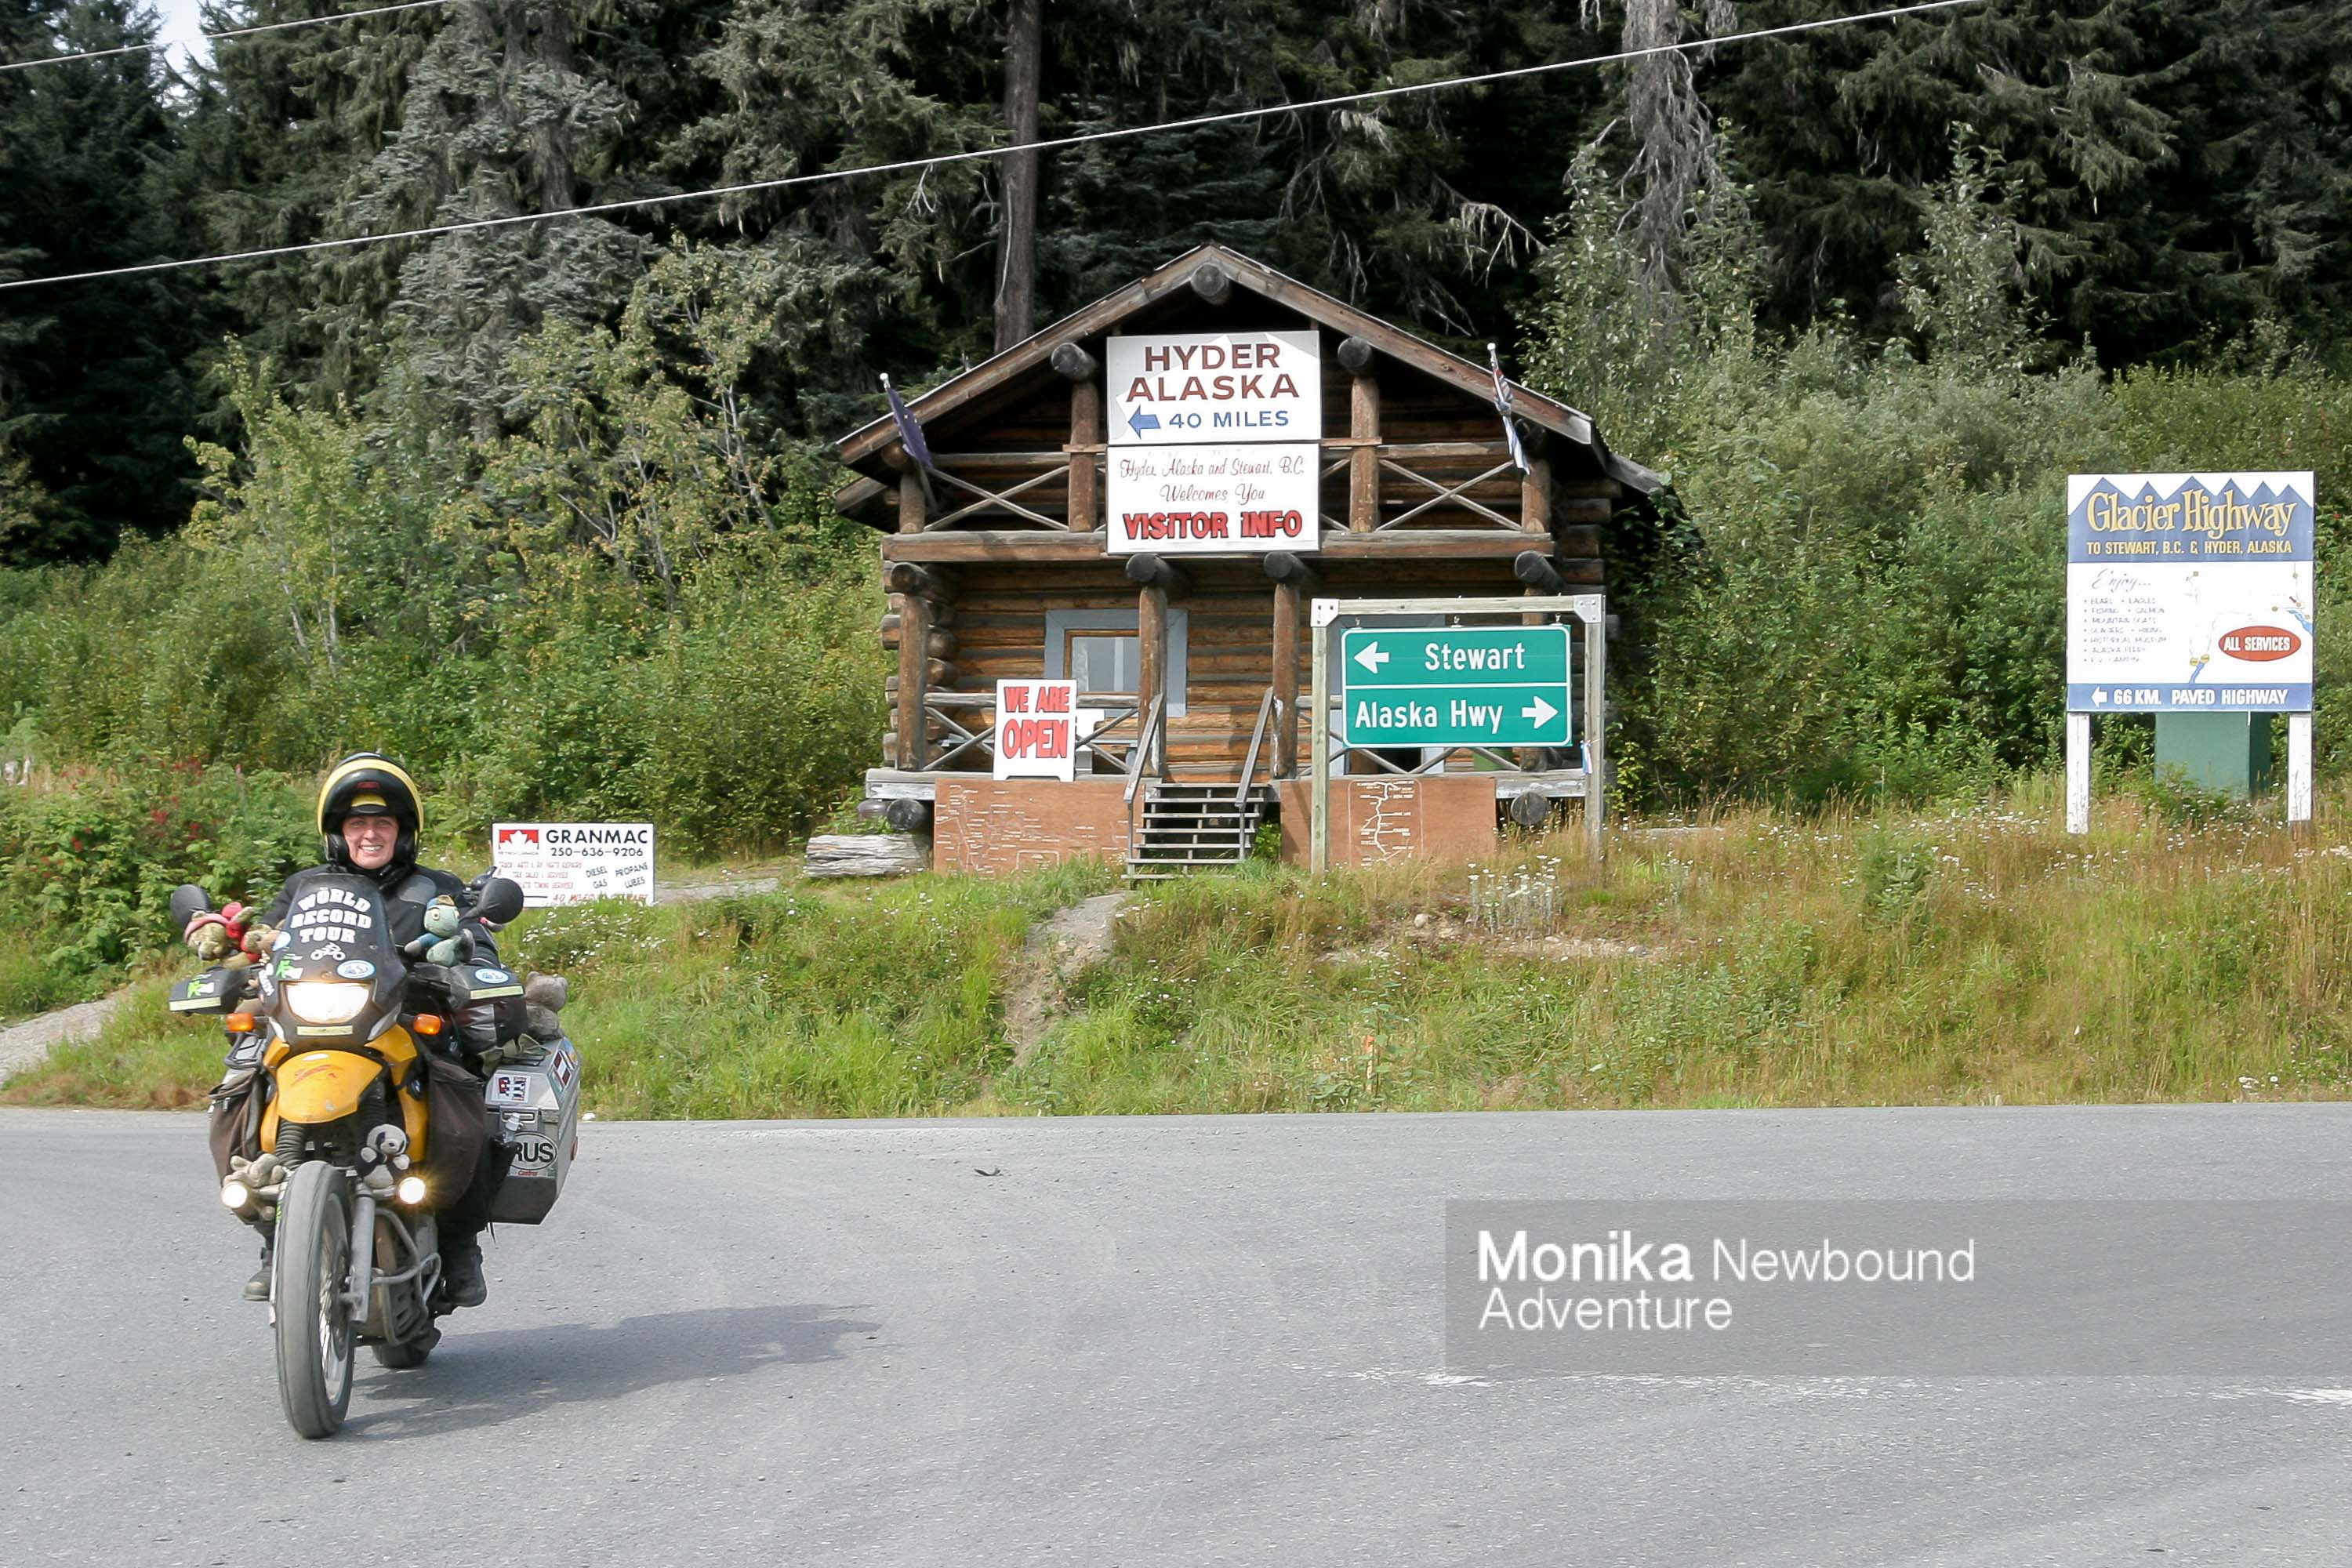 Alaska, Monika Newbound, Adventure,